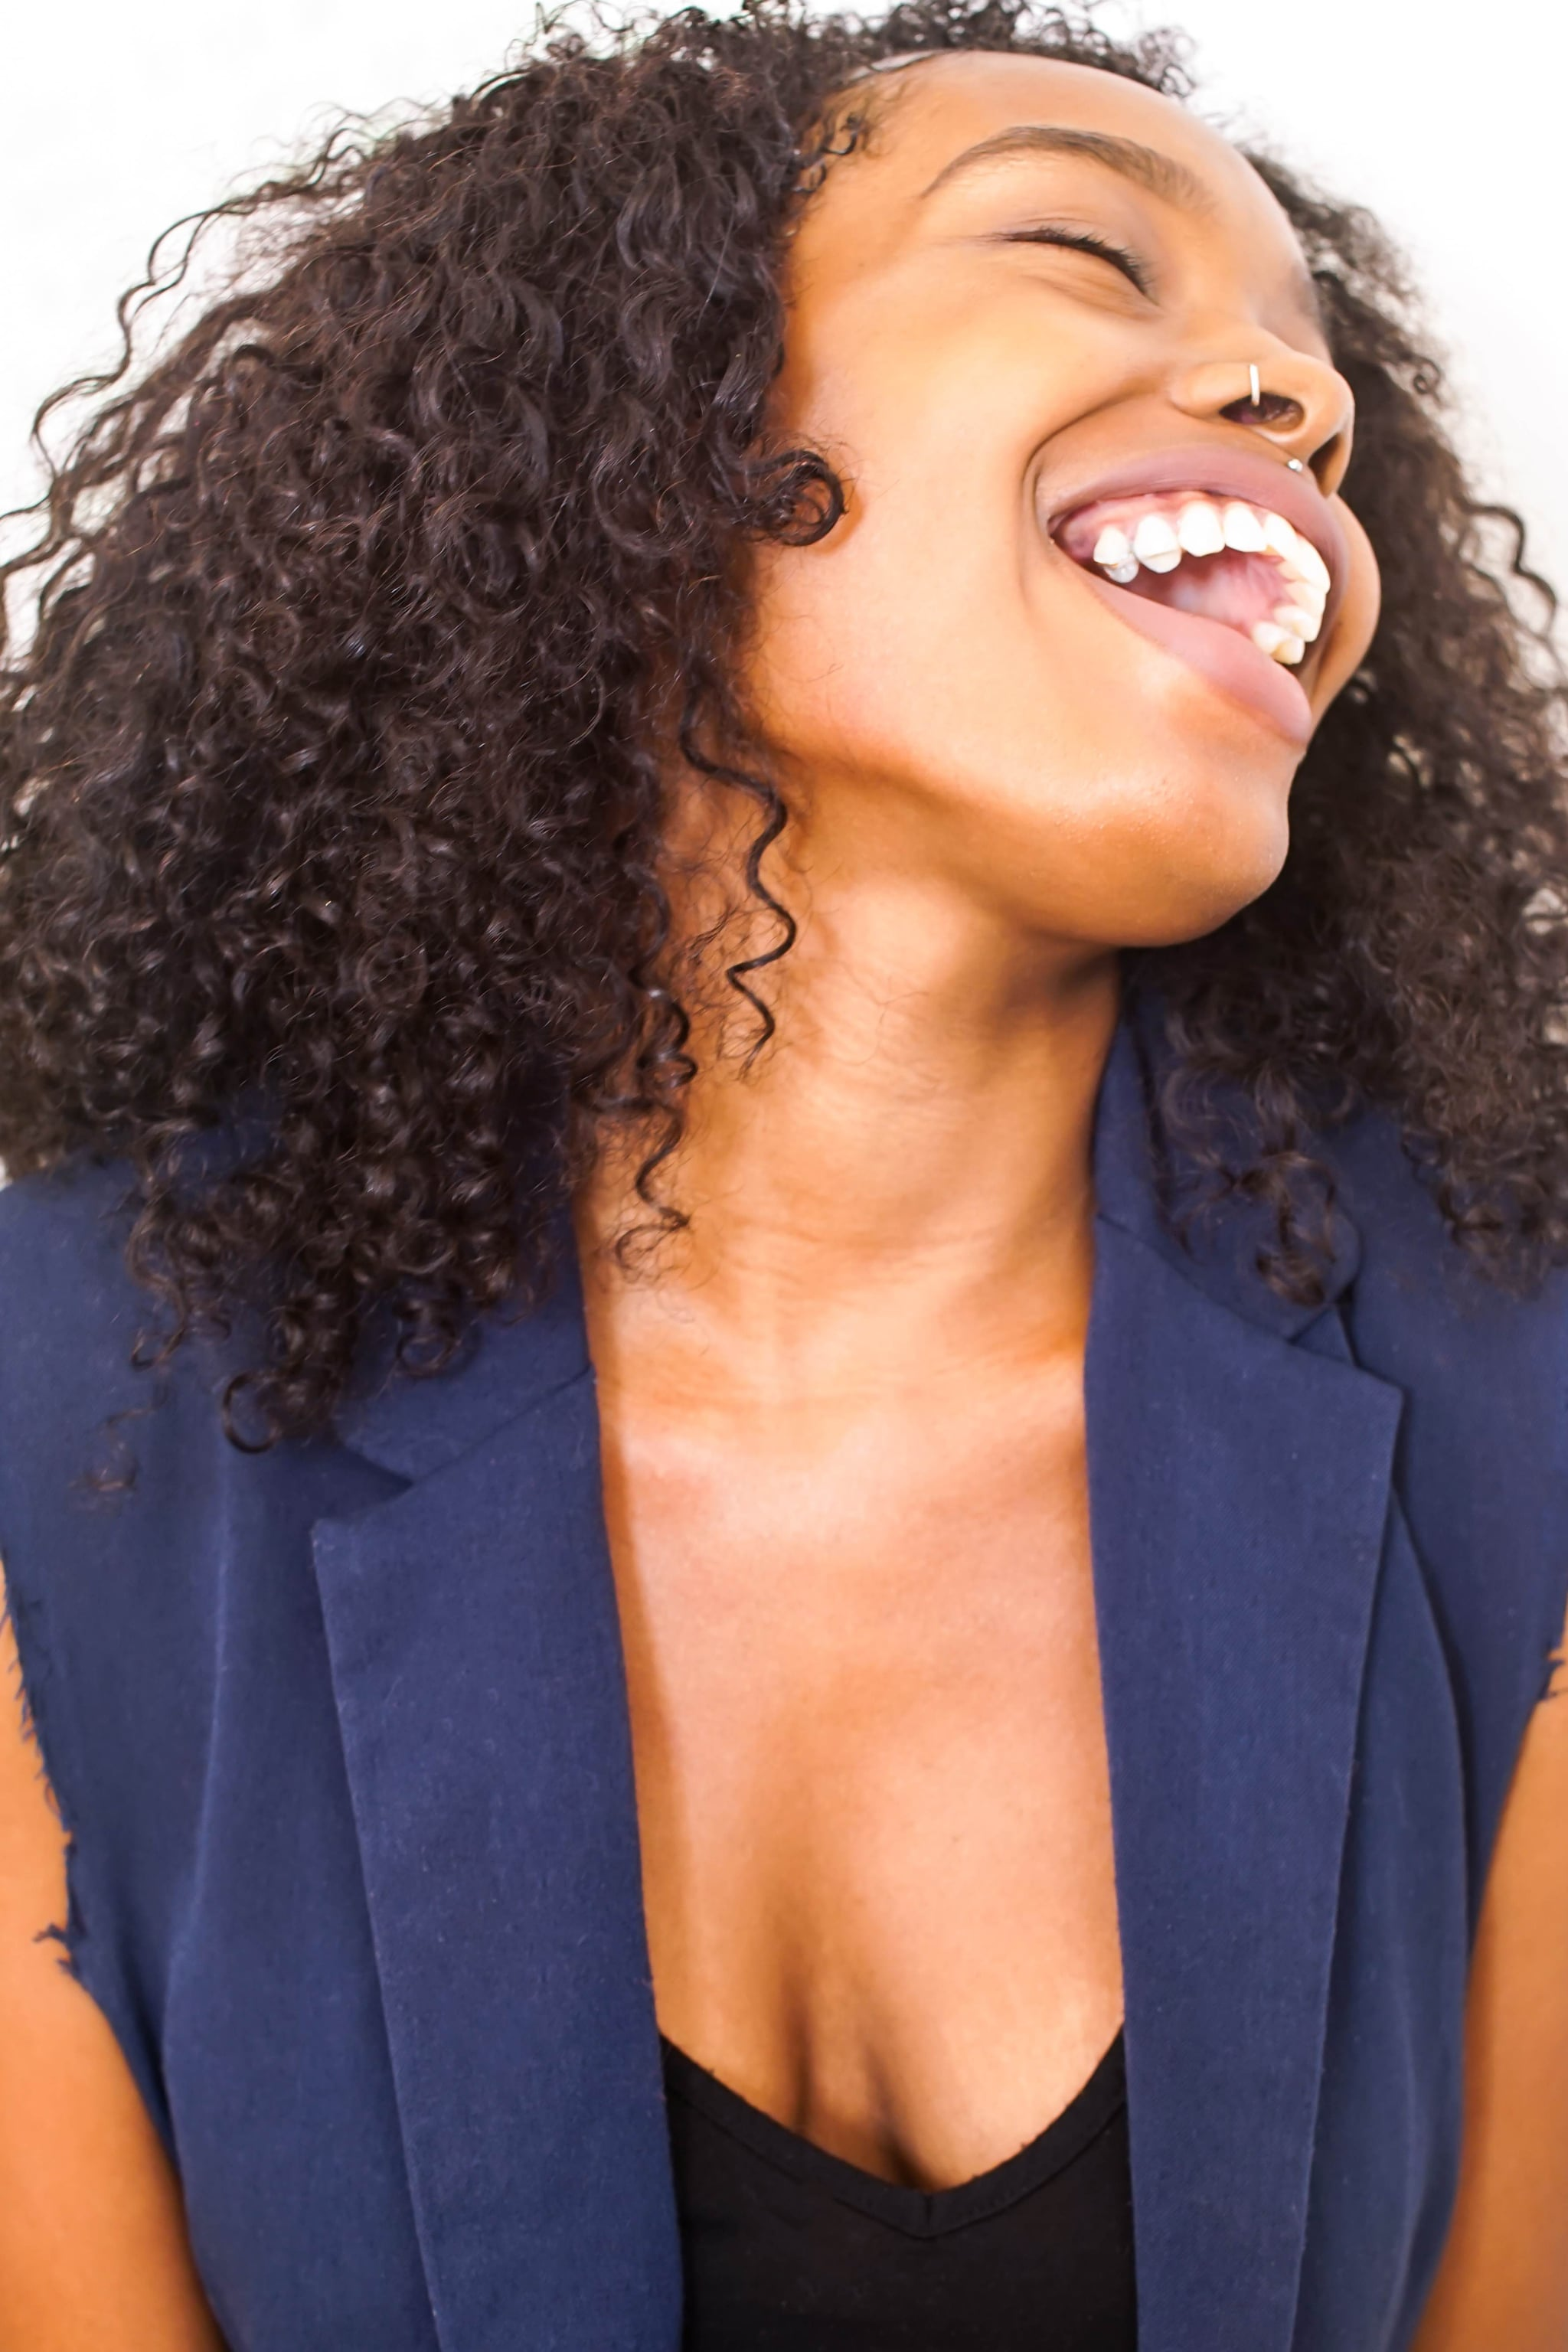 Keep Your Pearly Whites Intact by Avoiding These Problematic Foods and Drinks